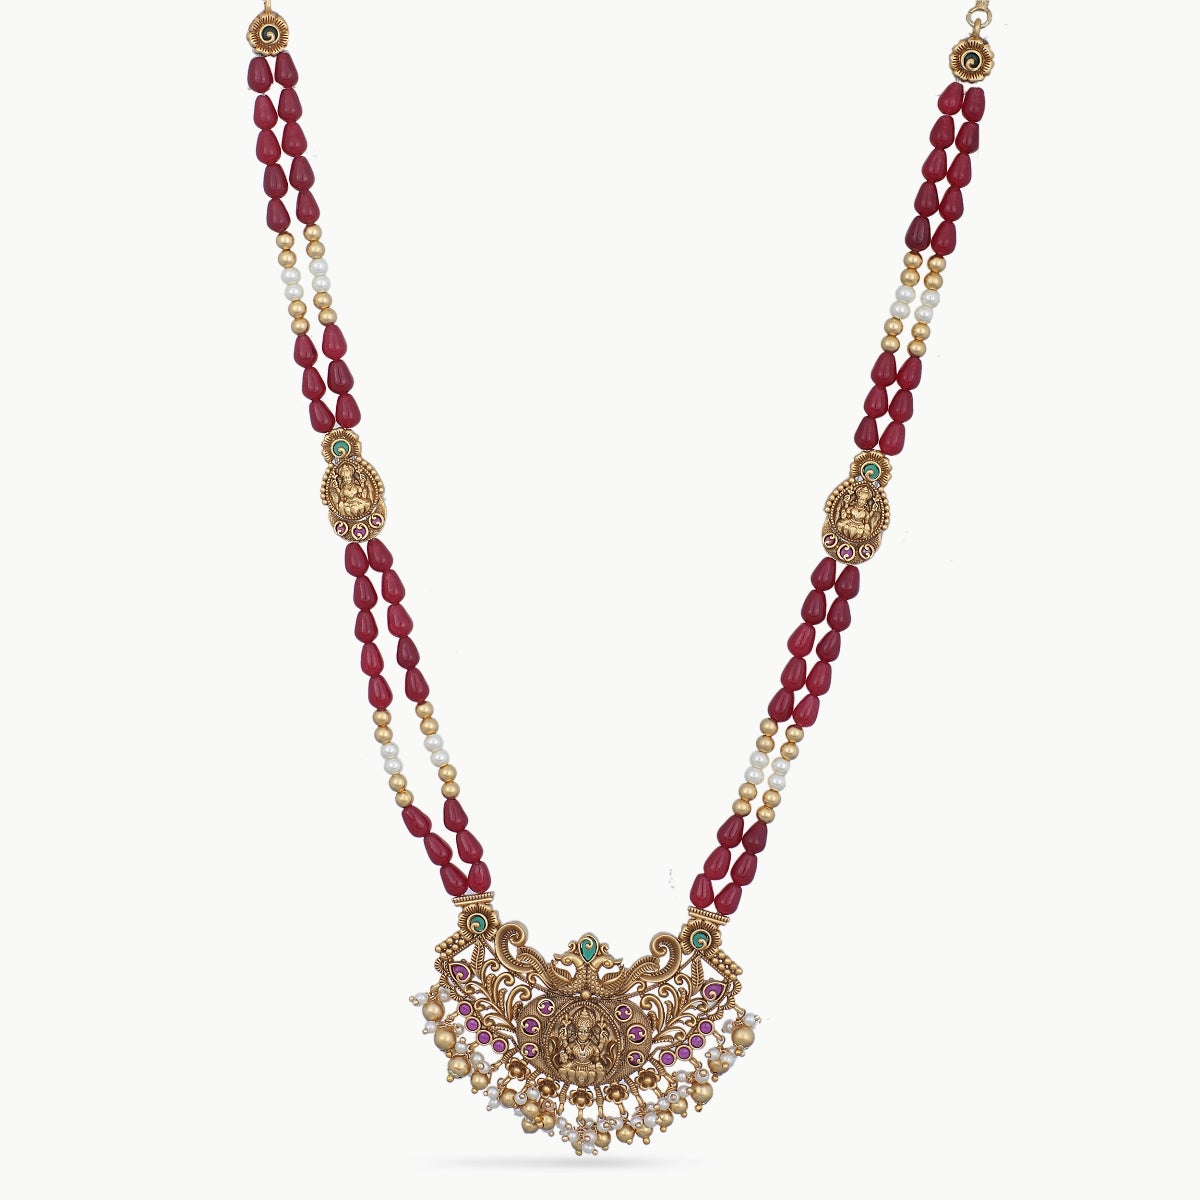 Amla Antique Necklace Set